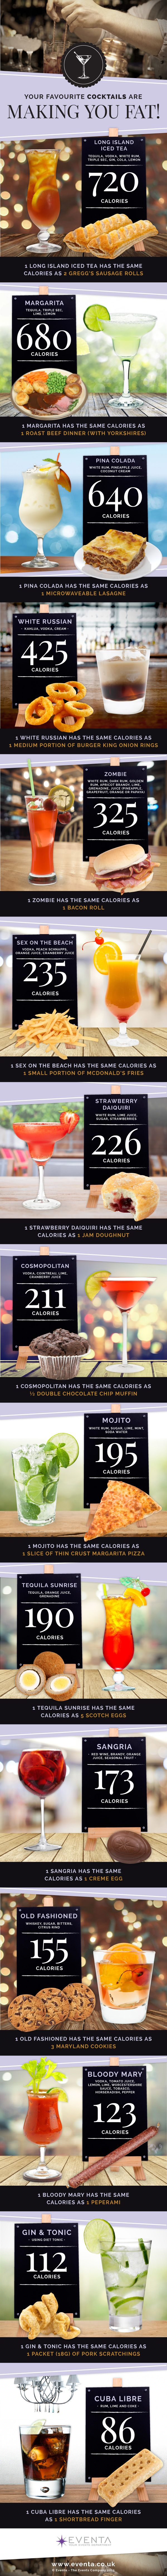 How Fattening are your Favourite Holiday Cocktails? #infographic